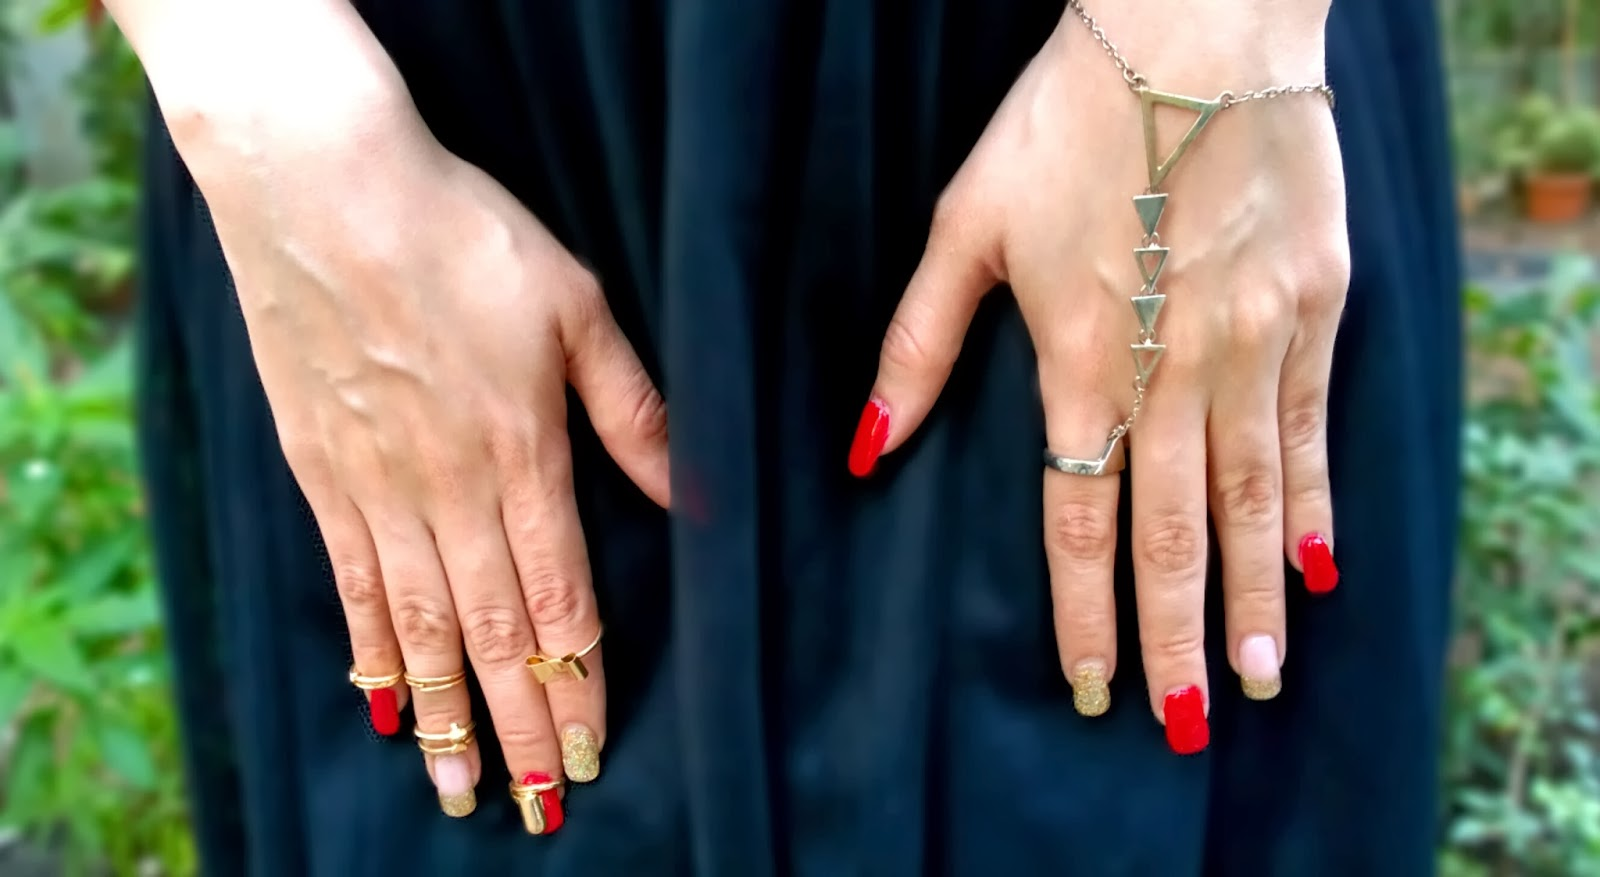 Knuckle Rings & Hand-Ring Chain